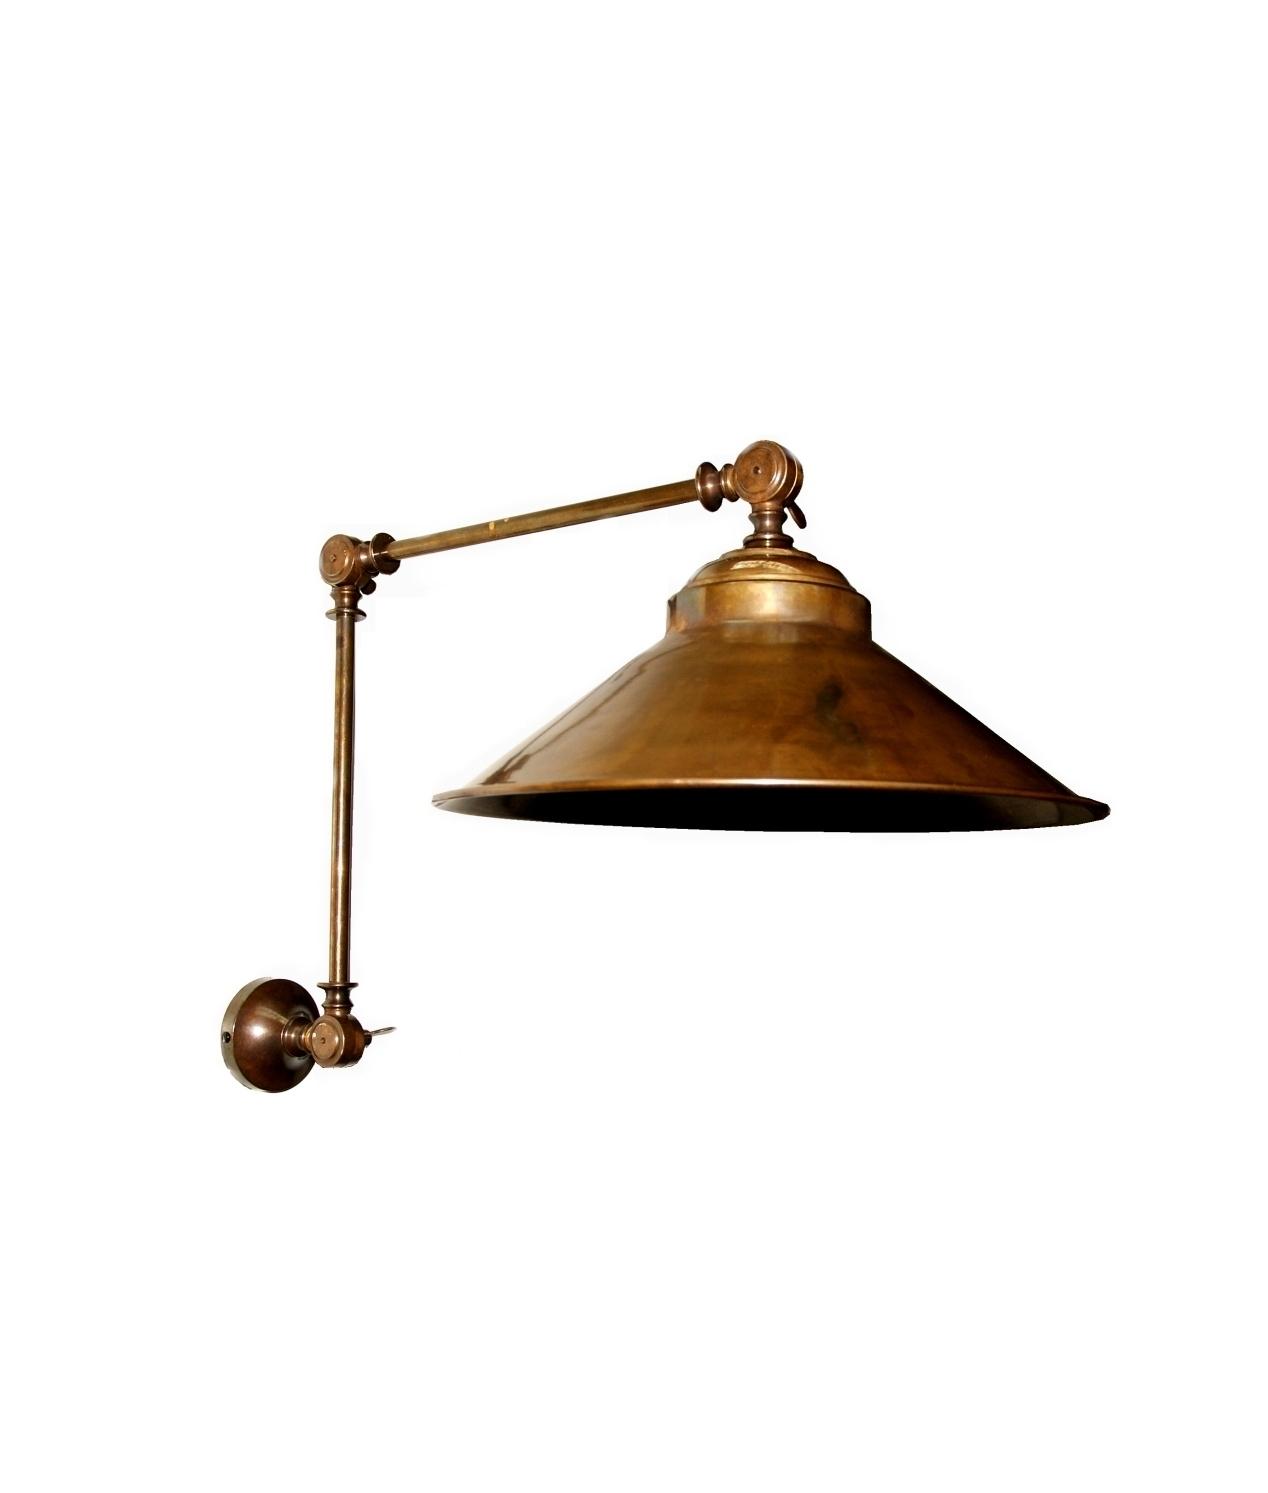 Long Reach Adjustable Brass Wall Light Available In Three